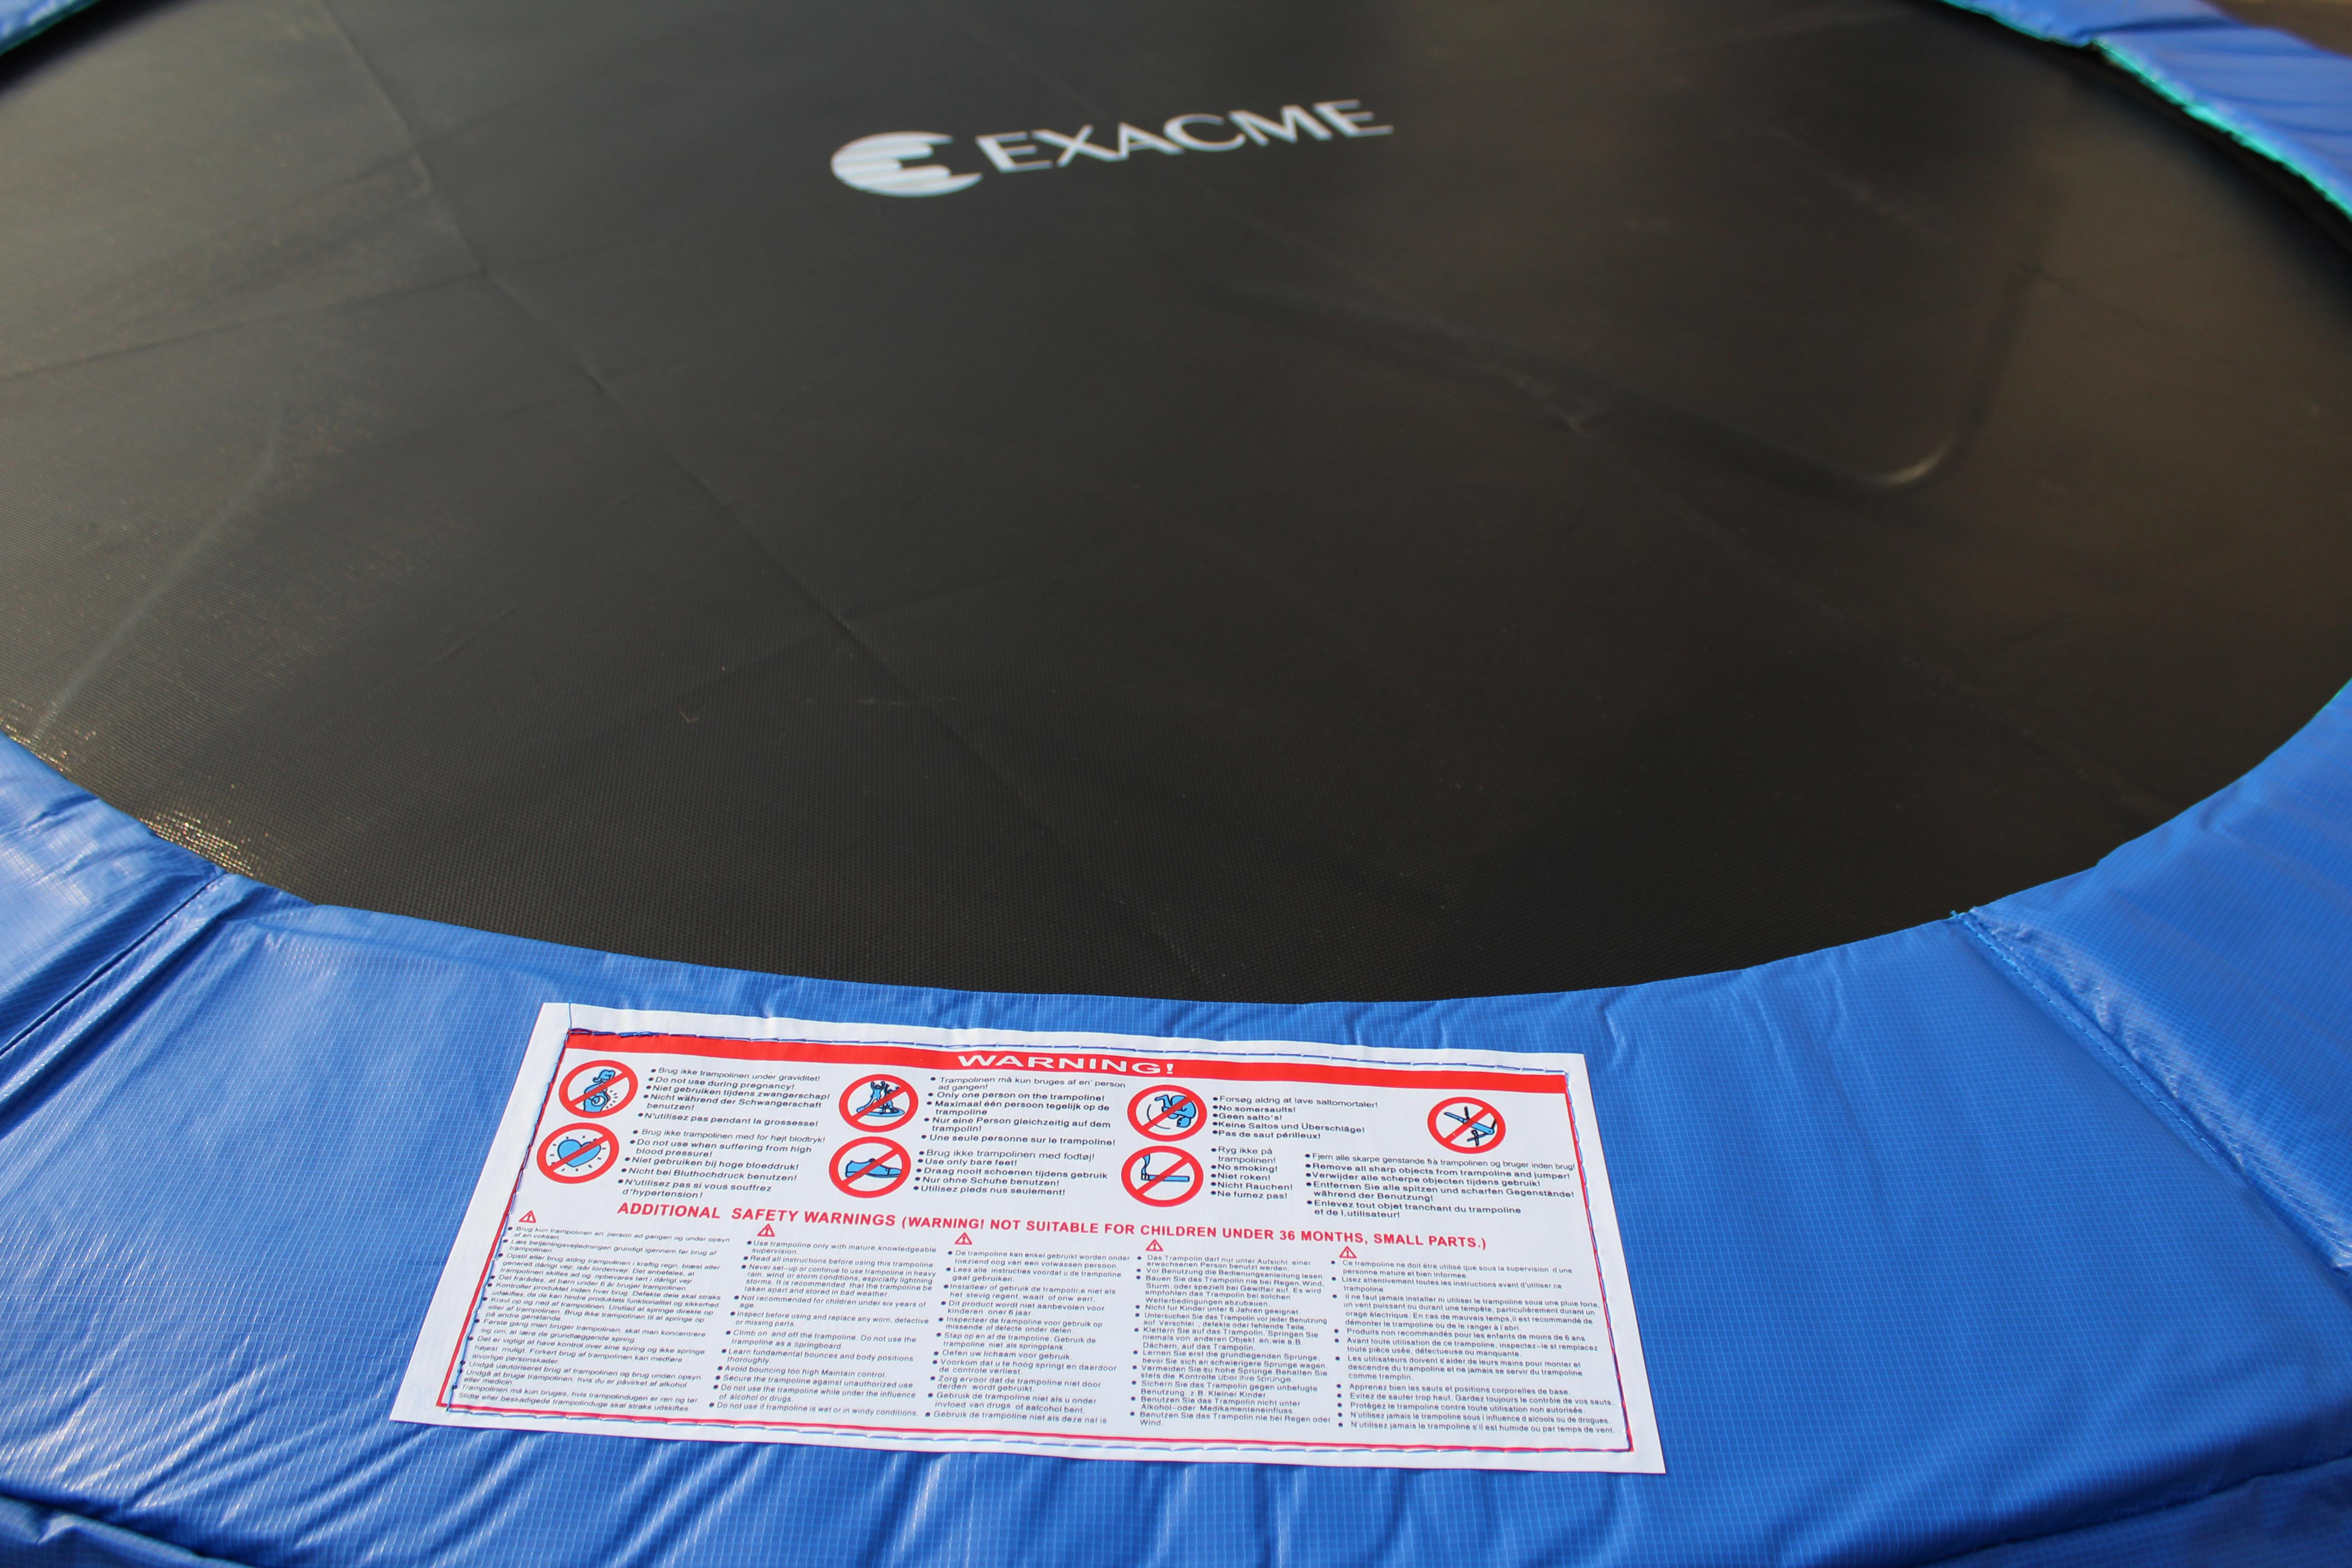 Exacme 12 Ft 6w Legs Trampoline W Safety Pad Amp Enclosure